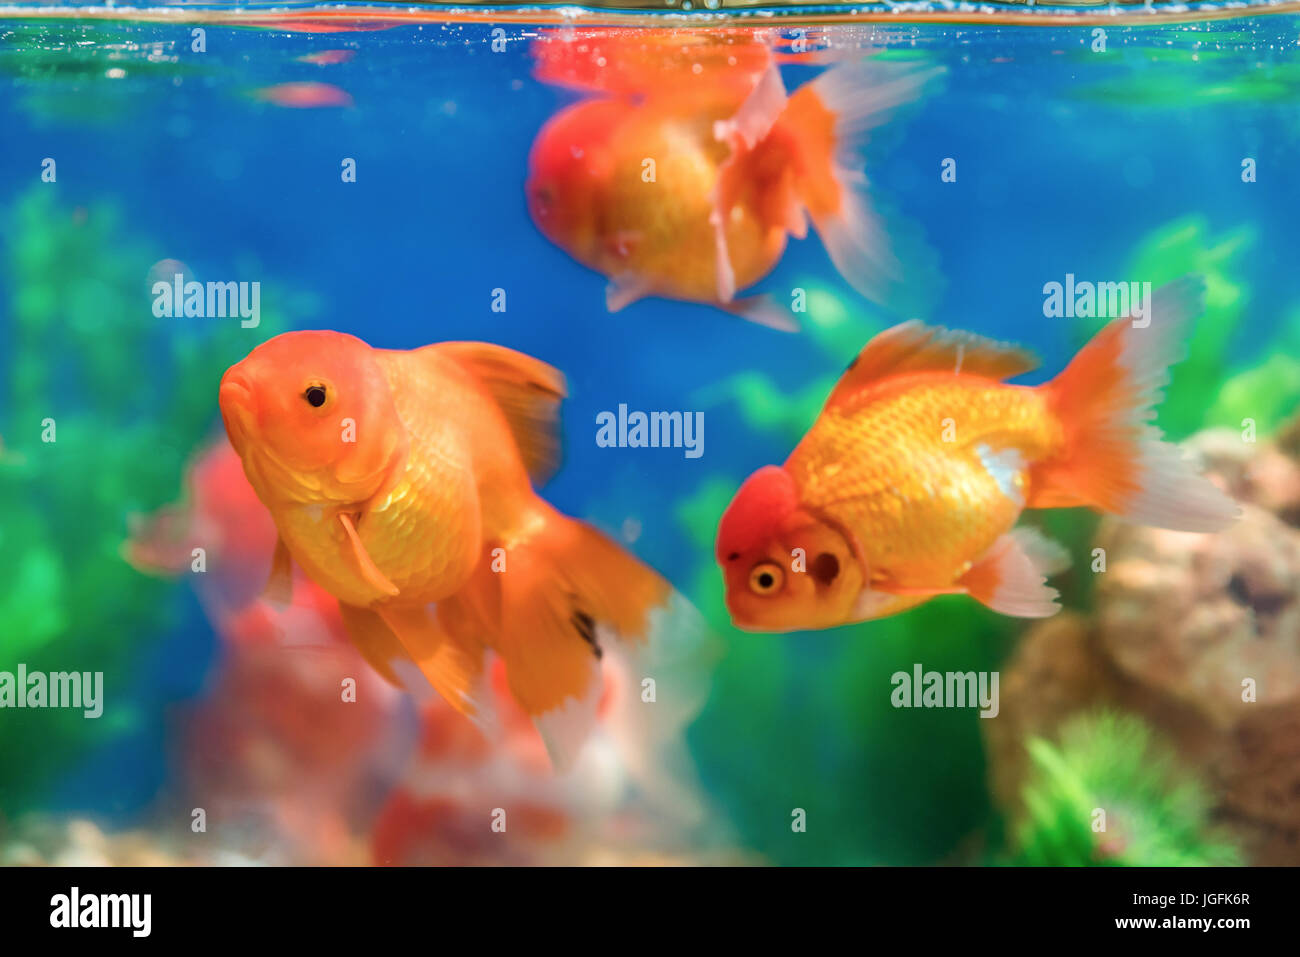 Gold tropical fish in aquarium stockfotos gold tropical for Goldfische im aquarium